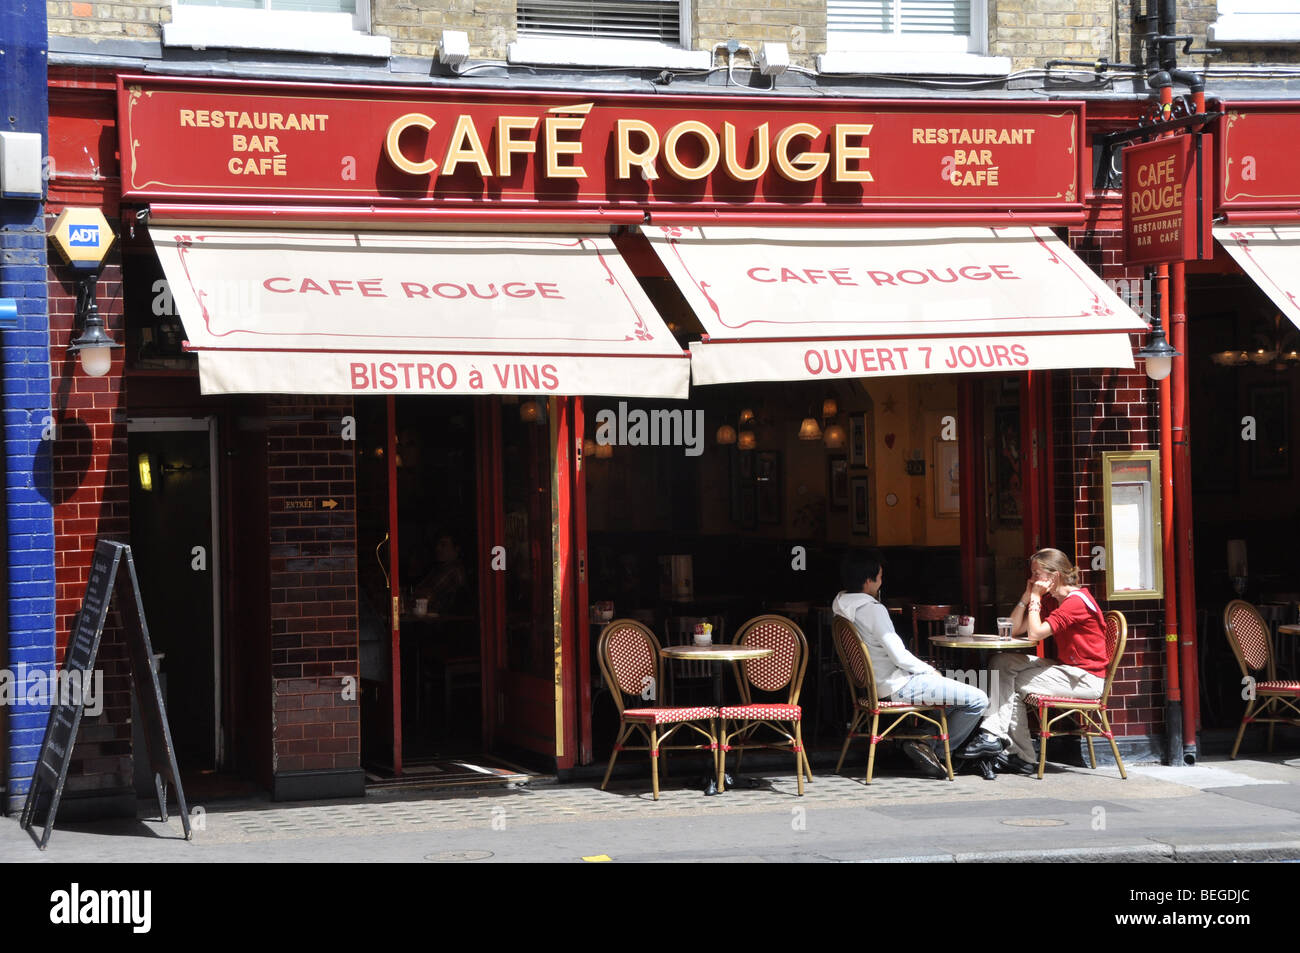 Eine Filiale der Restaurantkette Cafe Rouge in Bogen St Covent Garden London UK Stockbild